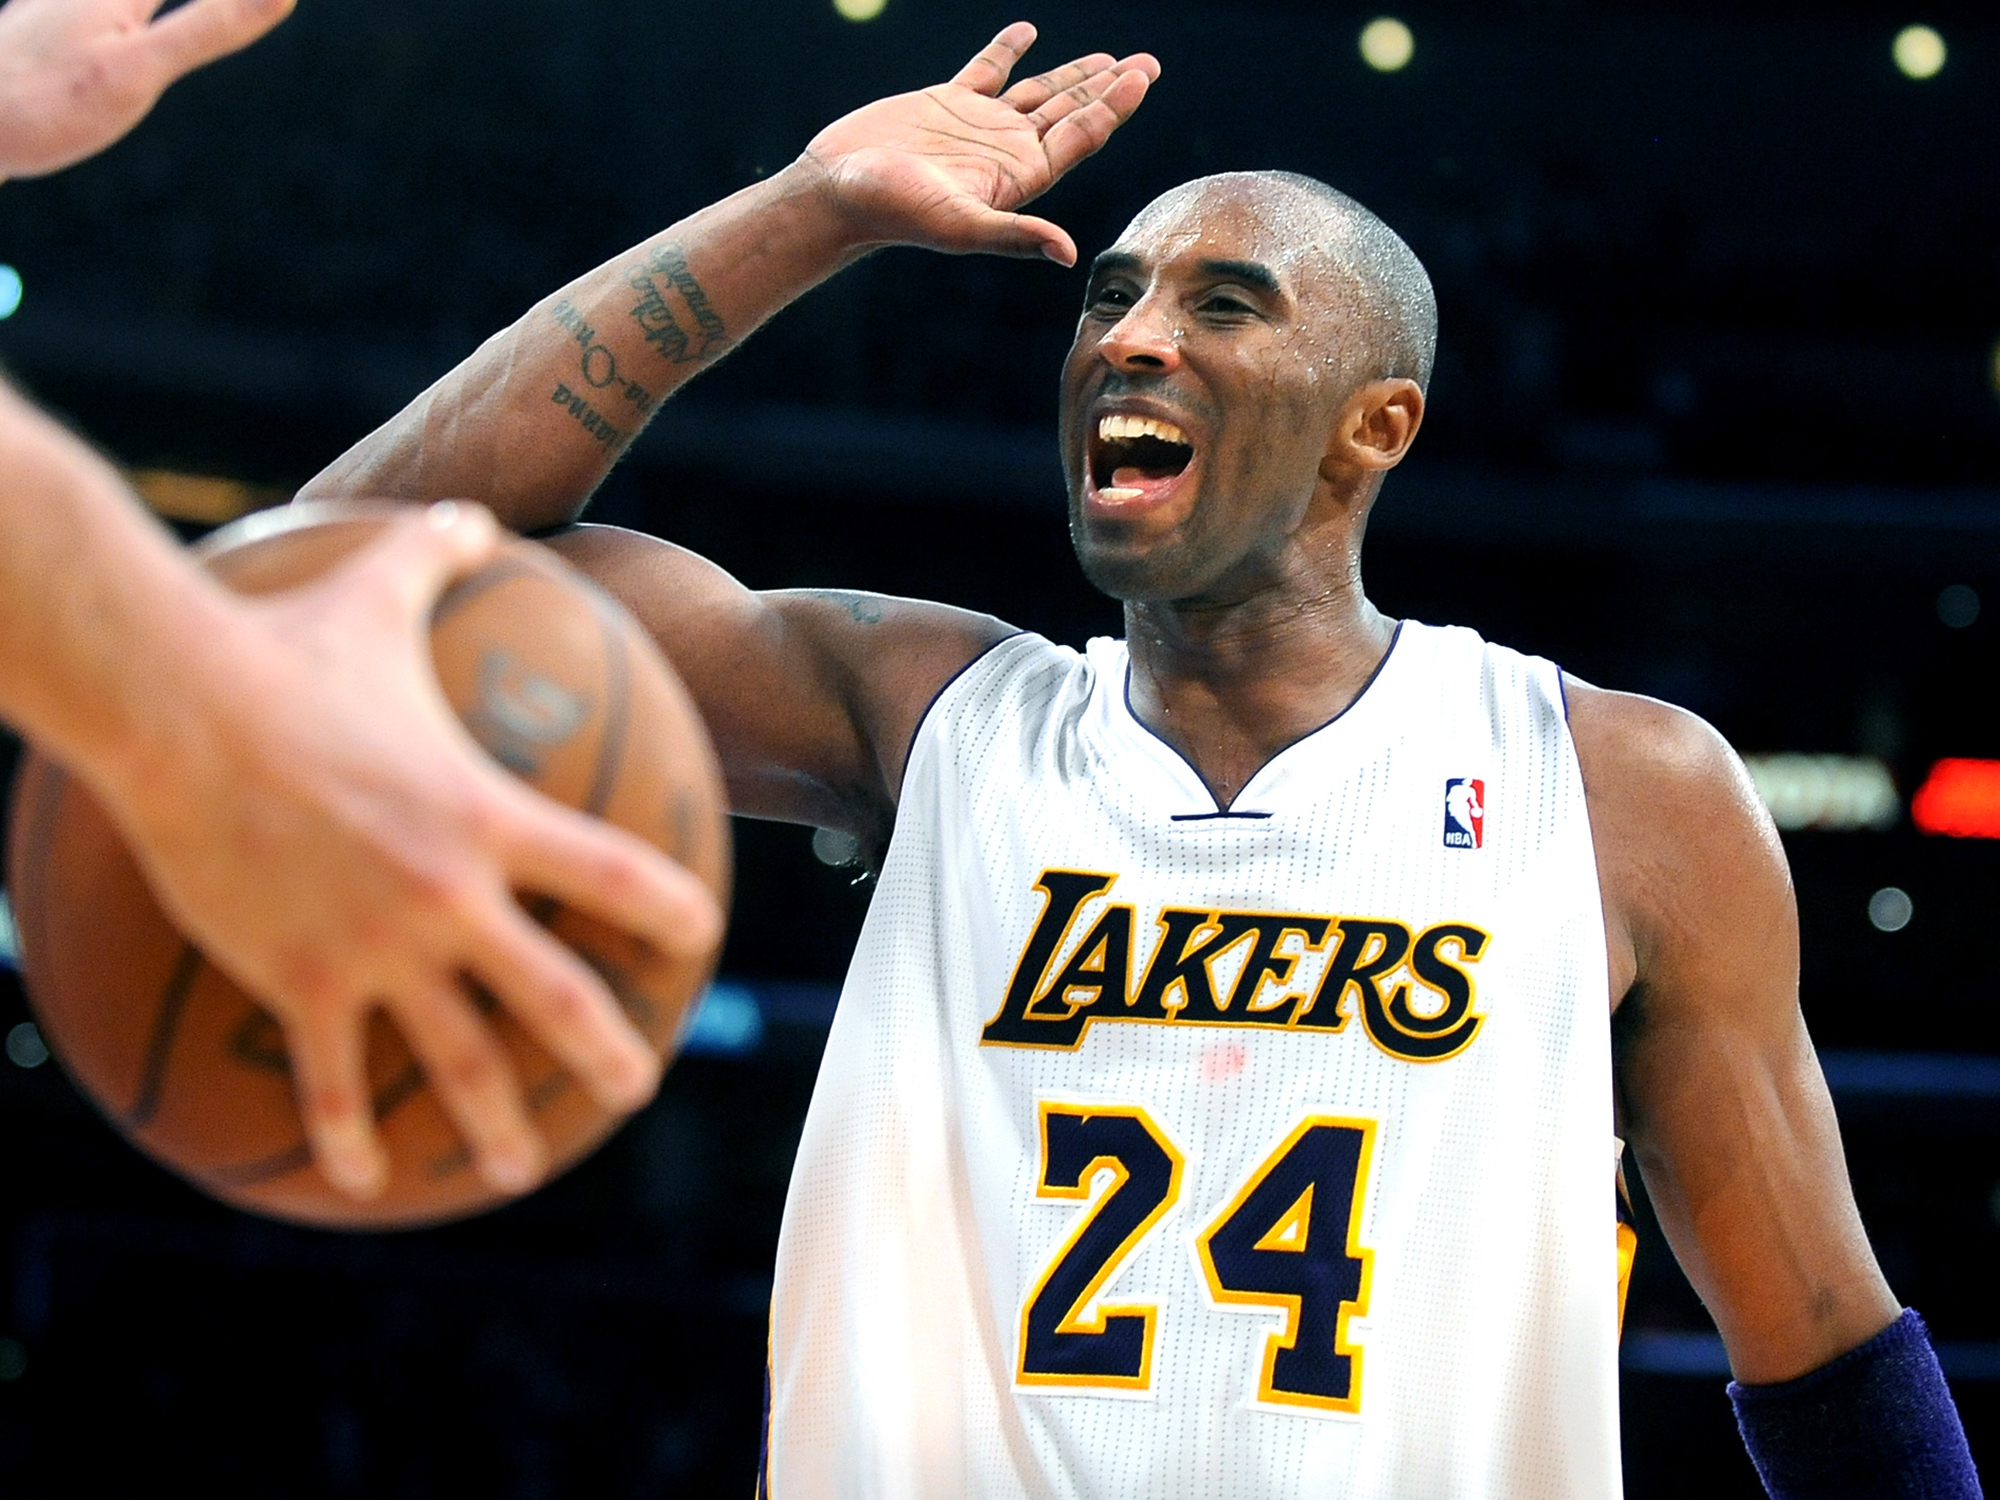 Lakers Kobe Bryant celebrates with teamate Pau Gasol while defeating the Thunder in overtime at the